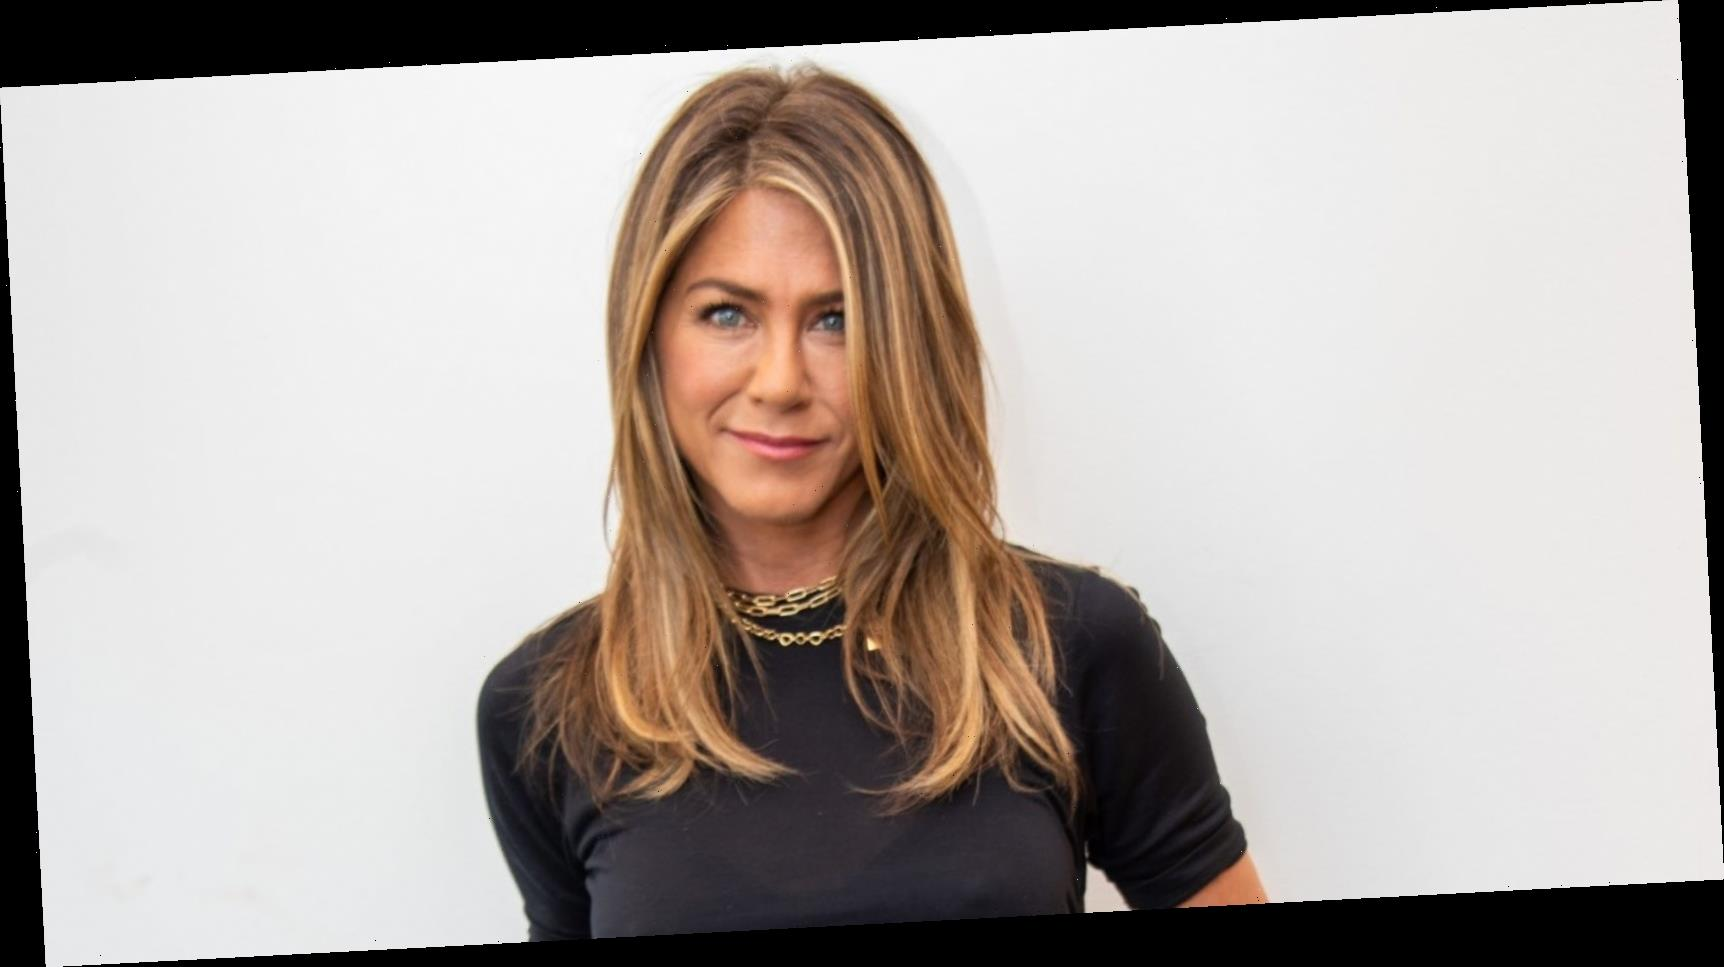 Jennifer Aniston just shut down an interviewer who tried to give her dating advice